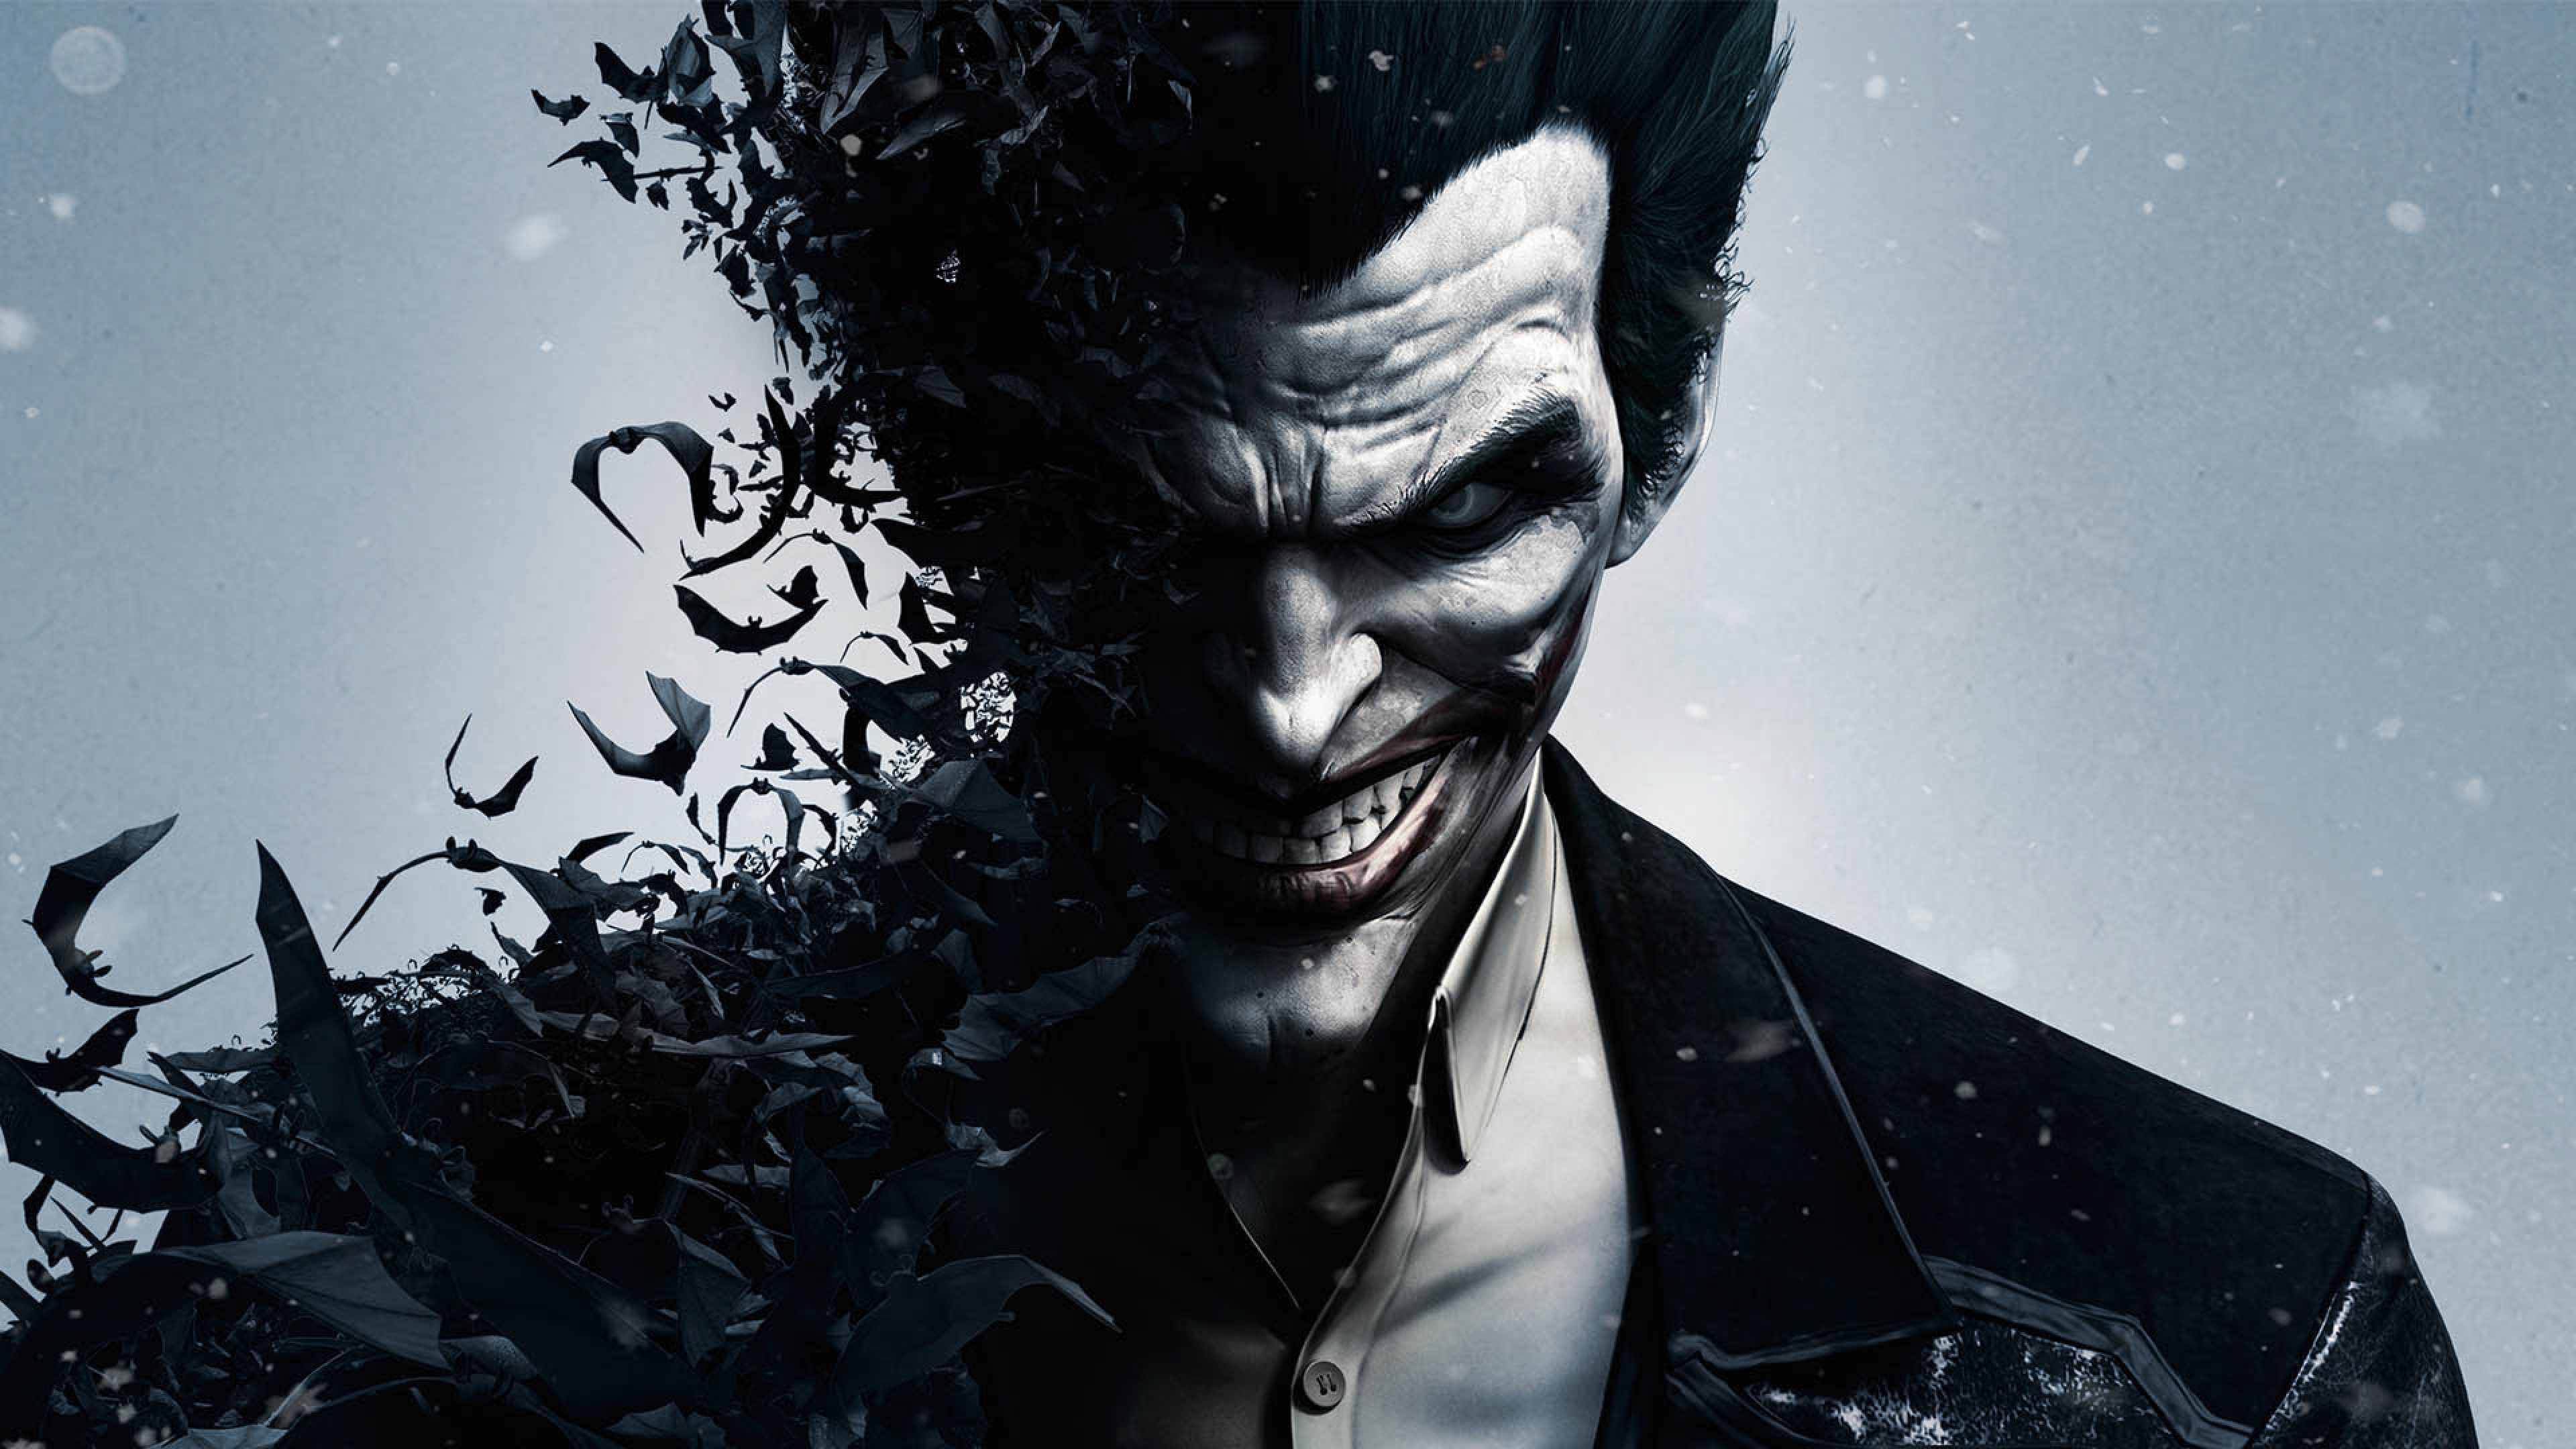 Joker Ps4wallpapers Com